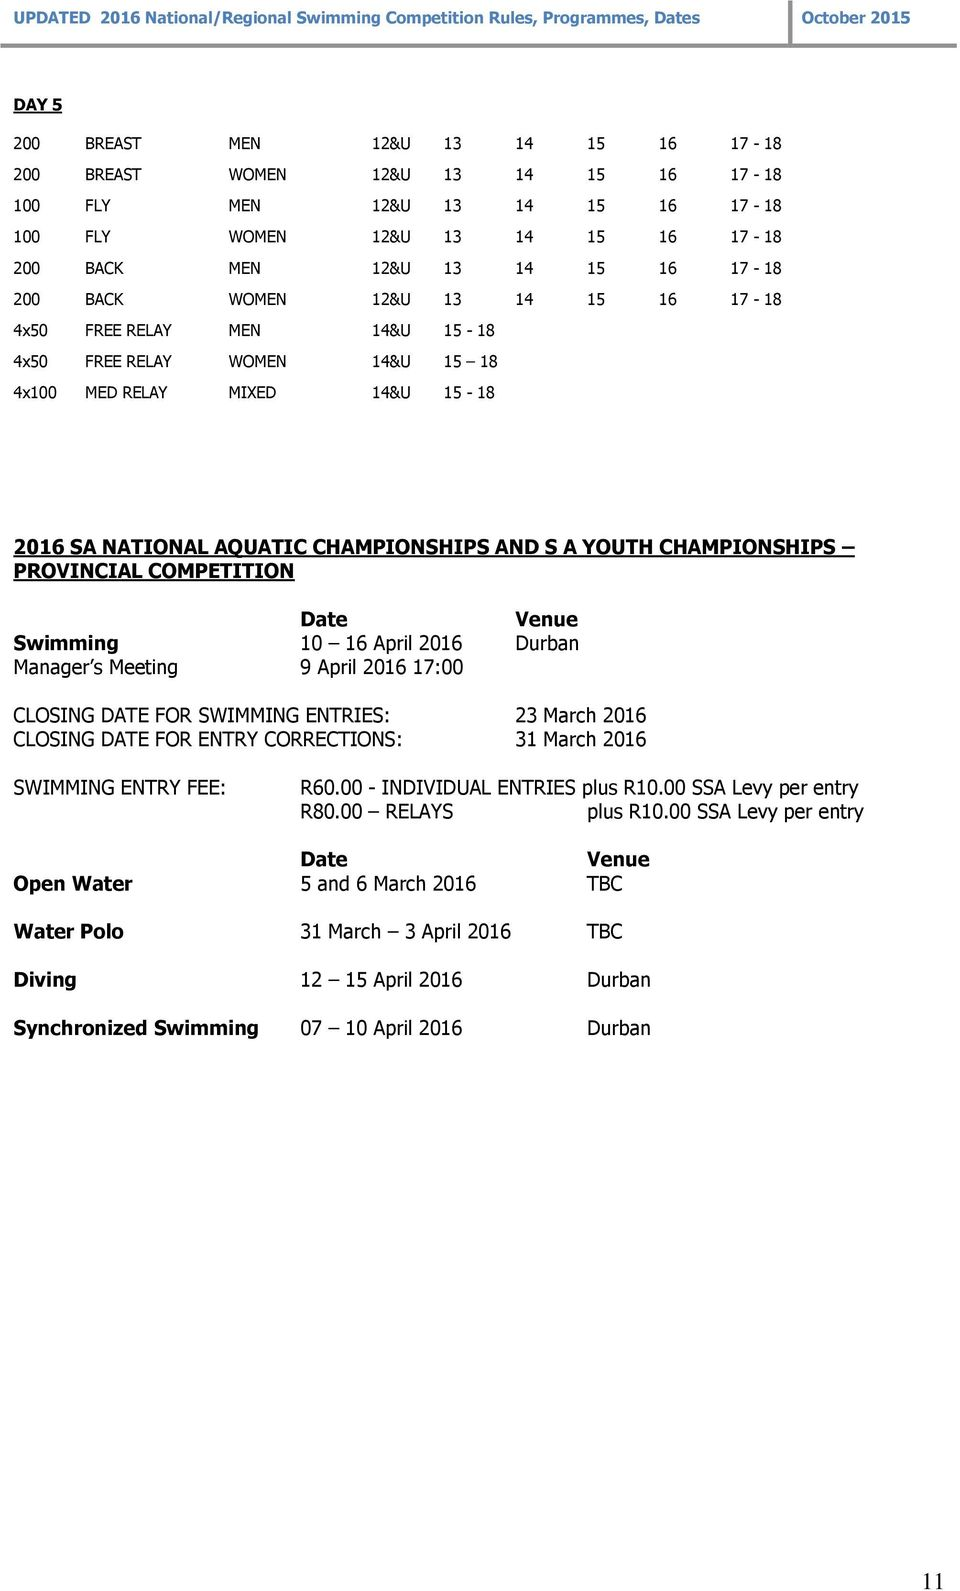 PROVINCIAL COMPETITION Date Venue Swimming 10 16 April 2016 Durban Manager s Meeting 9 April 2016 17:00 CLOSING DATE FOR SWIMMING ENTRIES: 23 March 2016 CLOSING DATE FOR ENTRY CORRECTIONS: 31 March